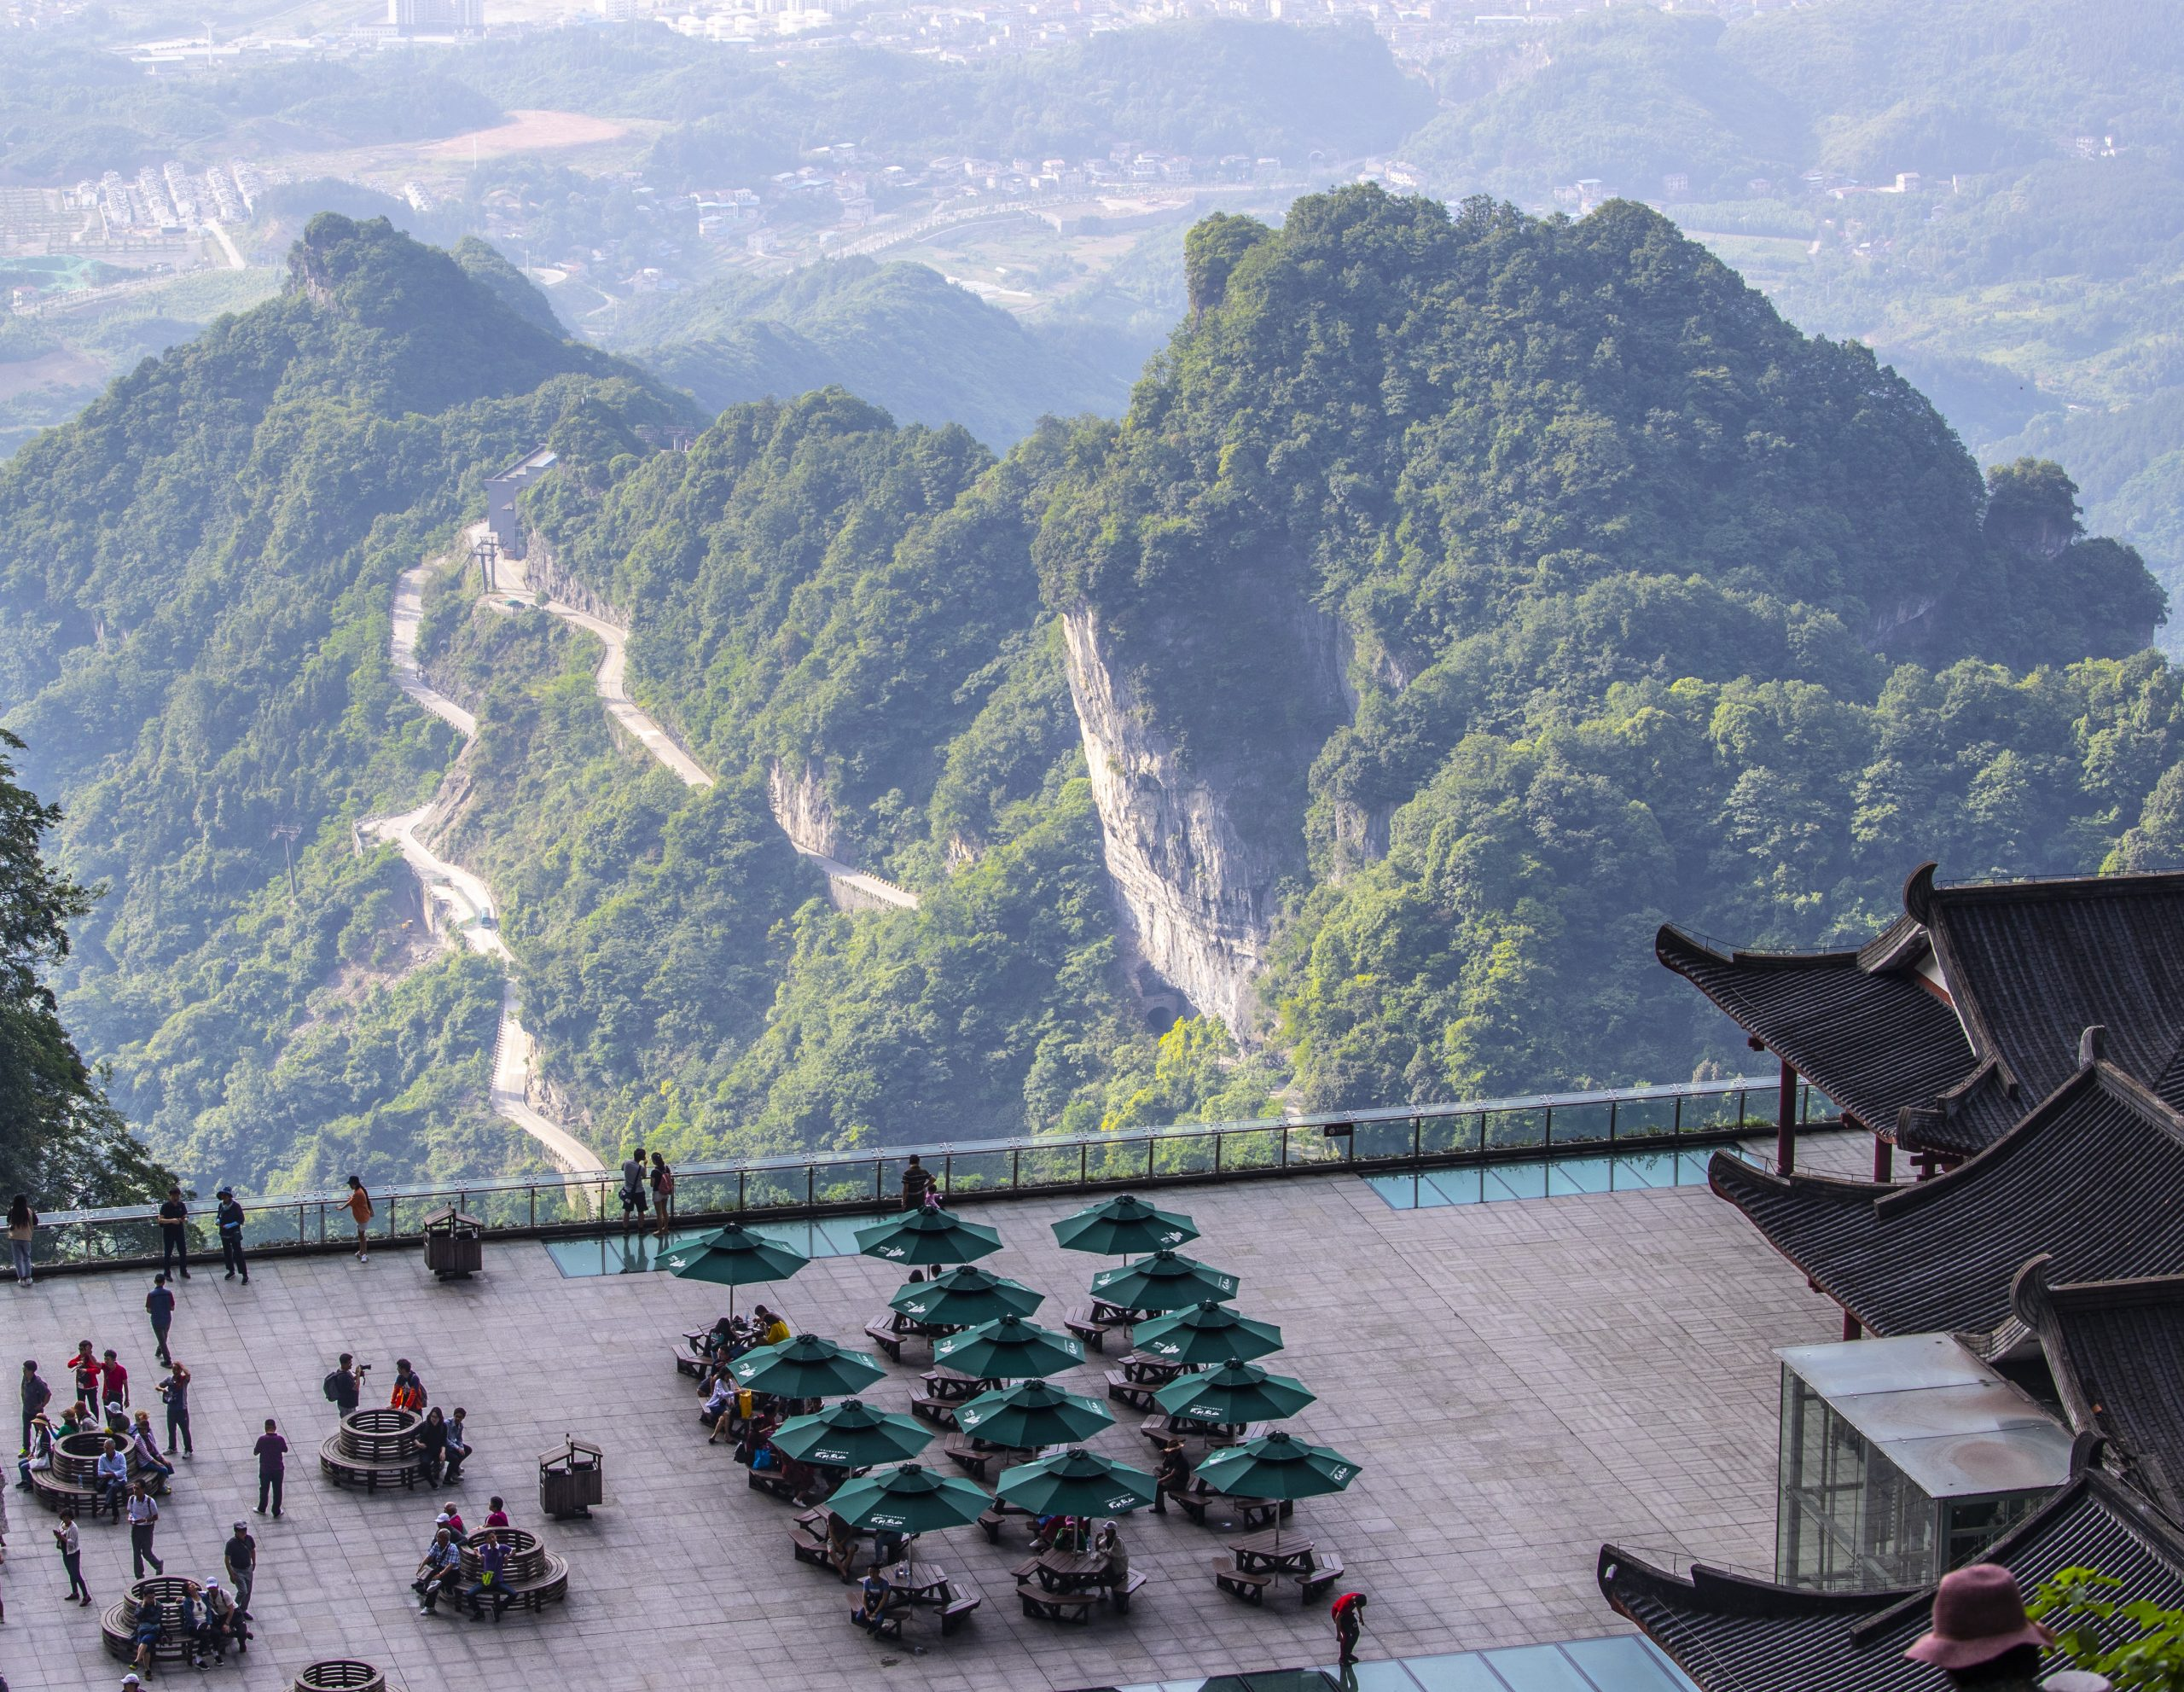 A hotel at mountain top in China